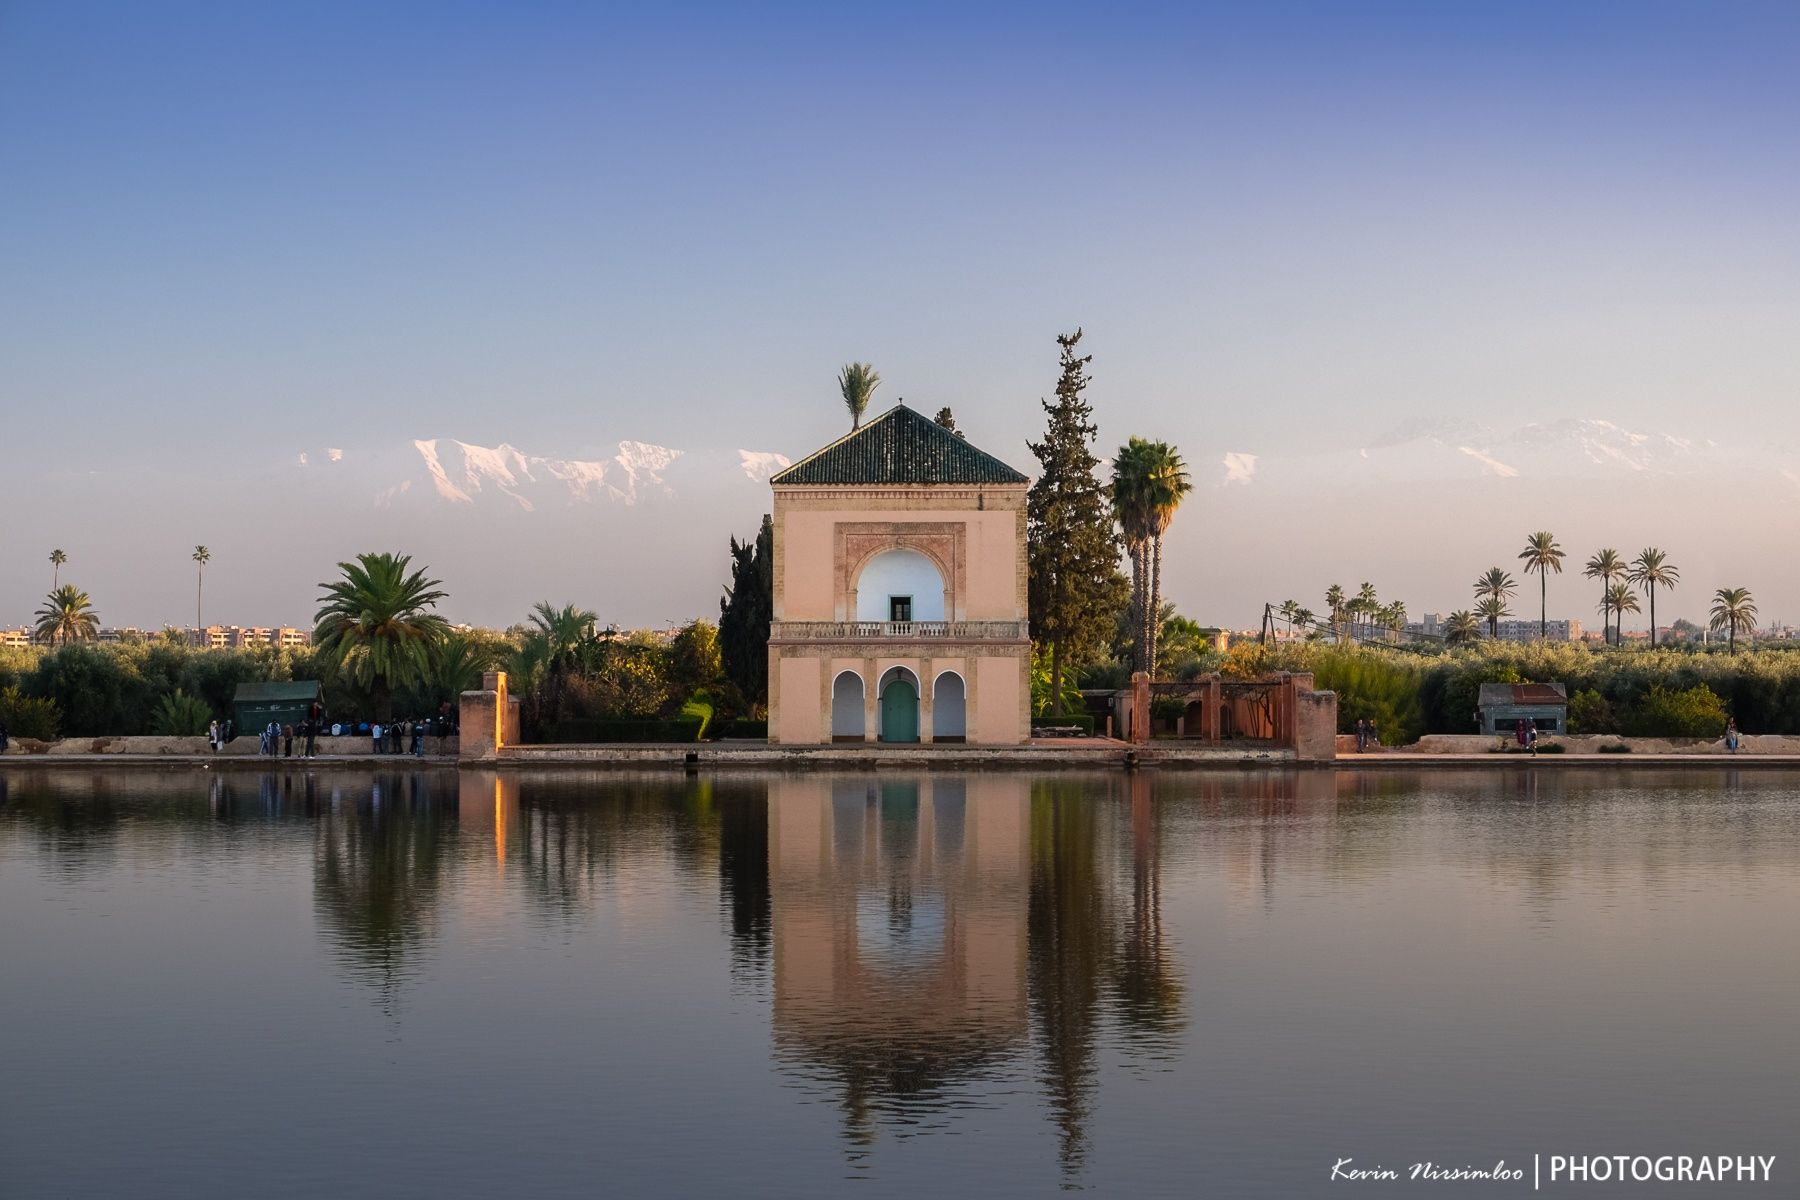 The Menara gardens are gardens located to the west of Marrakech, Morocco, at the gates of the Atlas mountains. They were built in the 12th century. The name Menara derives from the pavillon with its small green pyramid roof. The pavilion was built during the 16th century Saadi dynasty and renovated in 1869 by sultan Abderrahmane of Morocco, who used to stay here in summertime.